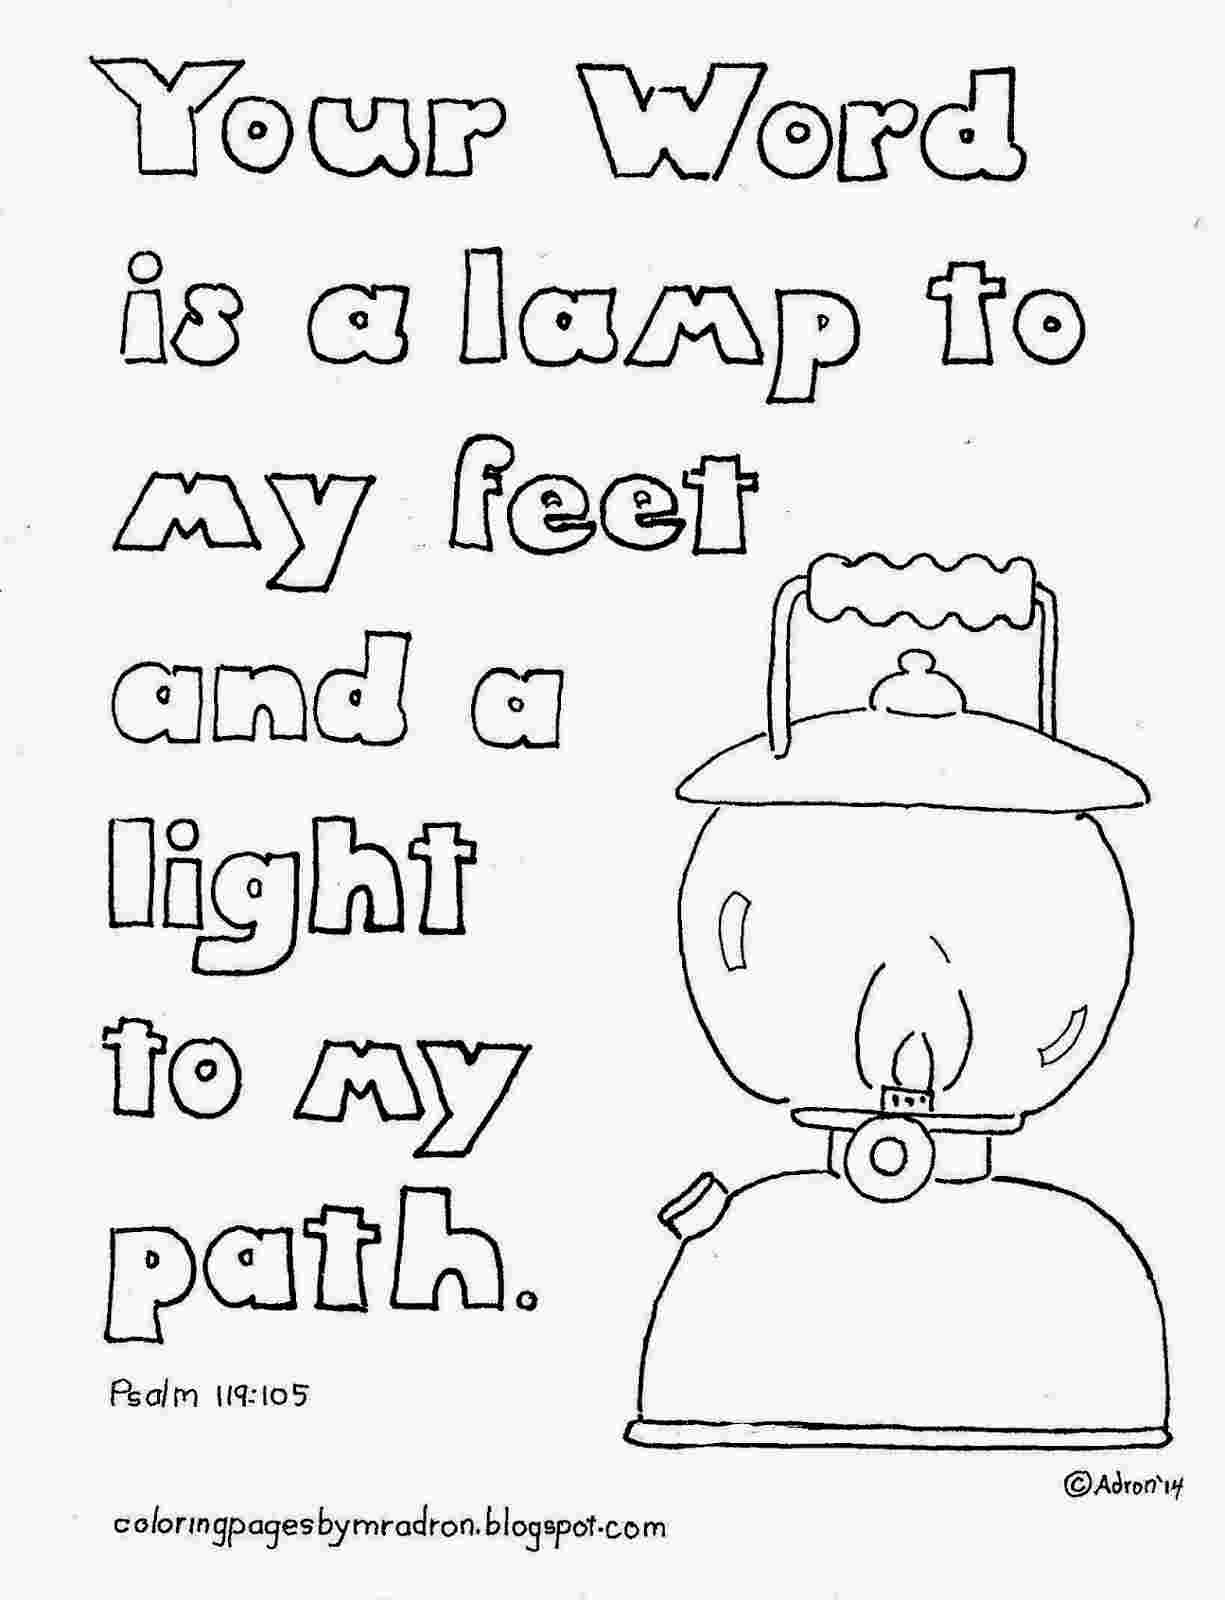 psalms 119 105 coloring page psalm 119 105 free coloring pages 105 page 119 coloring psalms